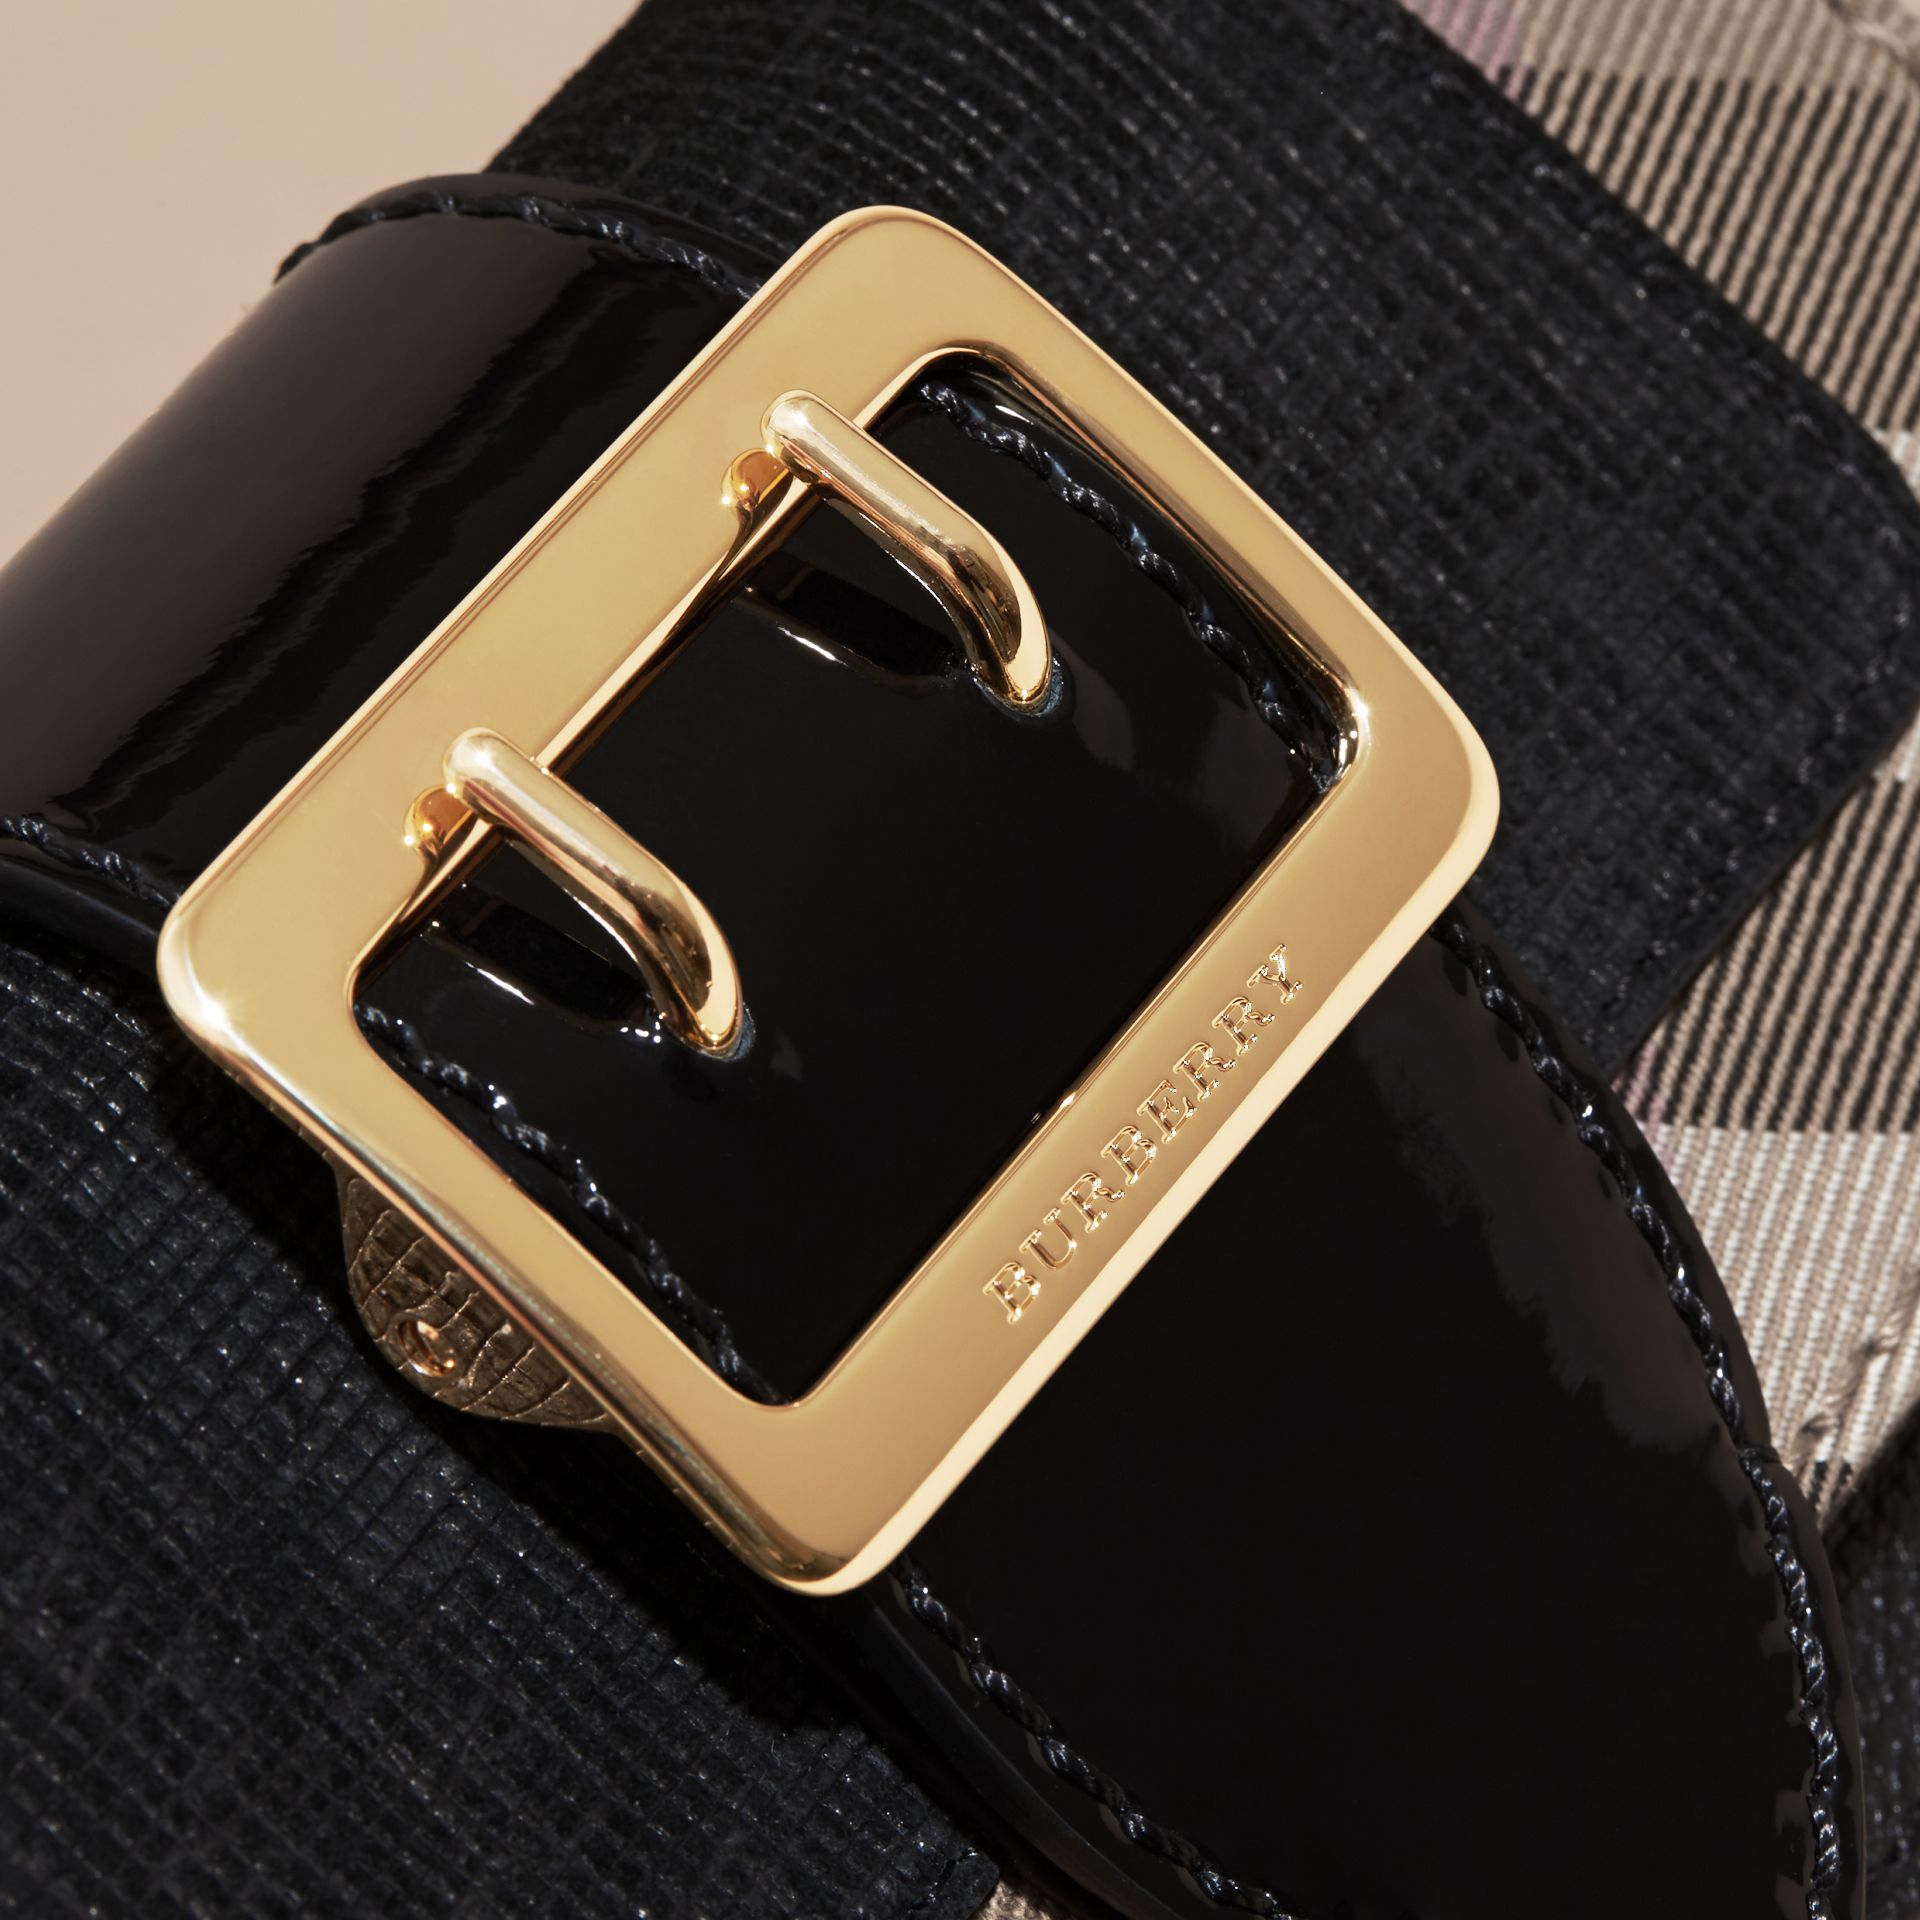 Black The Mini Buckle Bag in Leather and House Check Black - gallery image 2